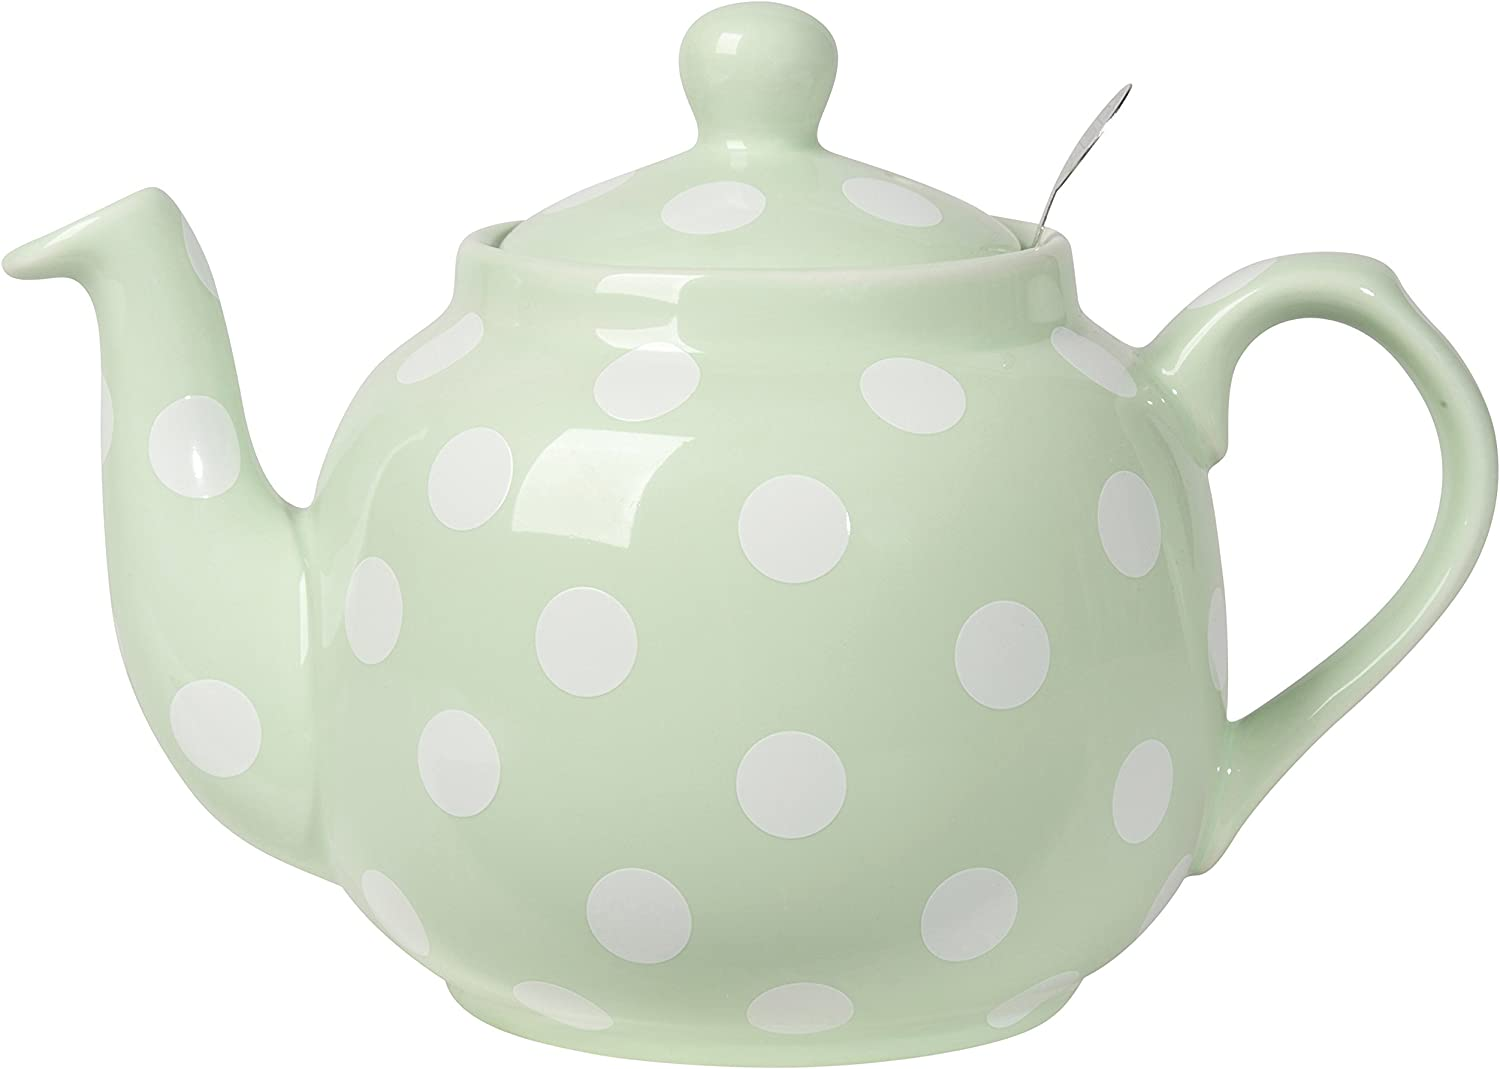 London Pottery Farmhouse Teapot with Stainless Steel Infuser, 4 Cup Capacity, Mint Green with White Polka Dots